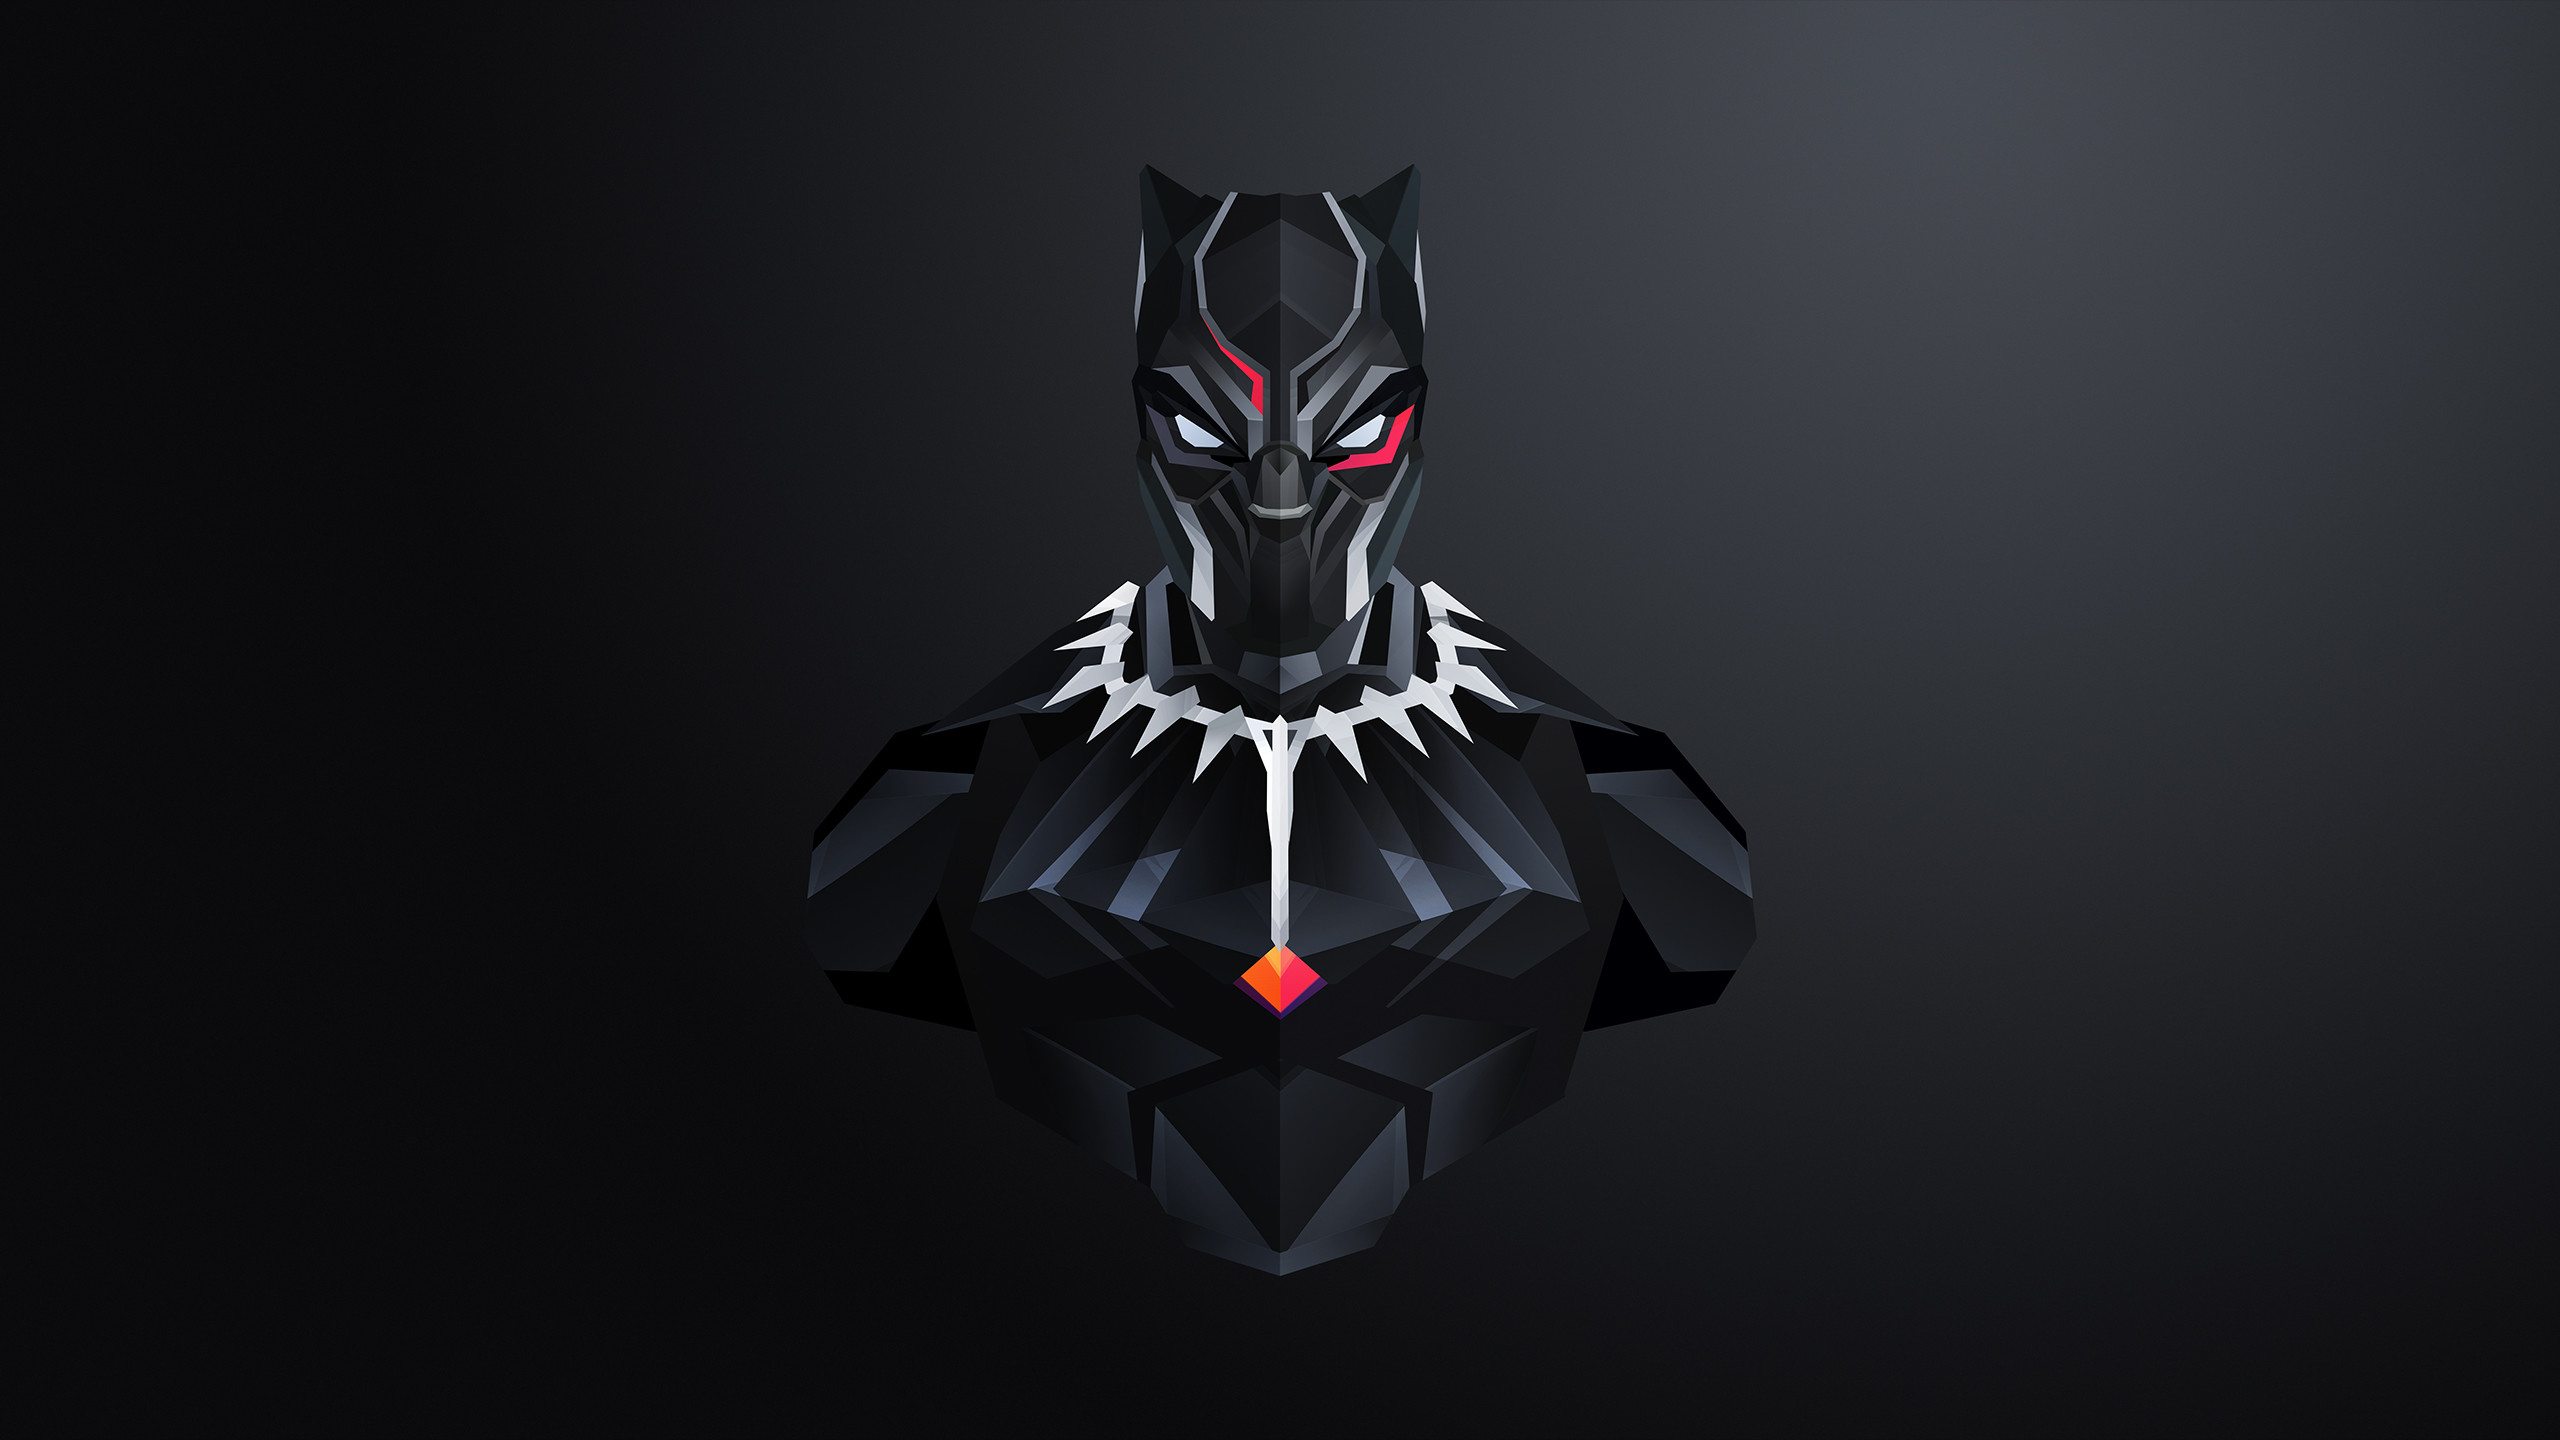 Black Panther Marvel Hd Wallpaper 73 Images